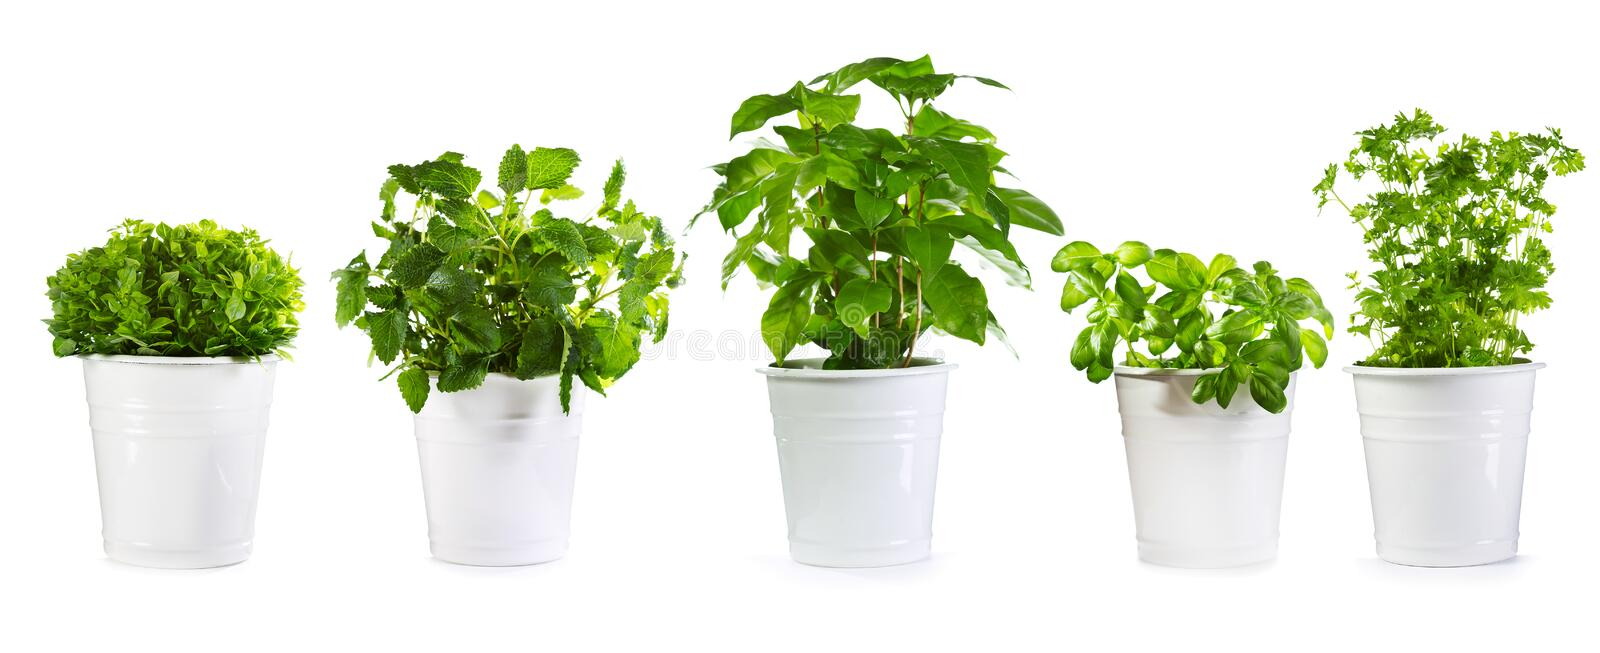 Set of potted green plants stock images